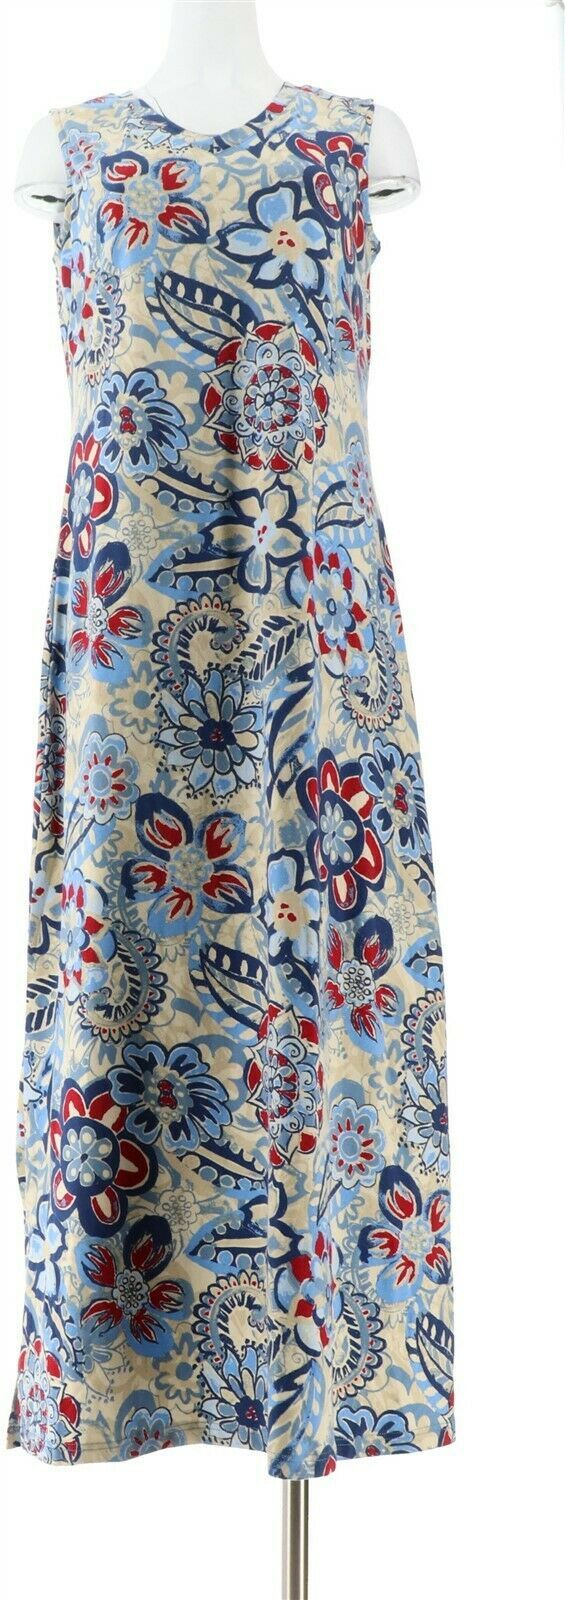 Primary image for Denim & Co Slvless V Neck Printed Maxi Dress Navy Multi S NEW A291636